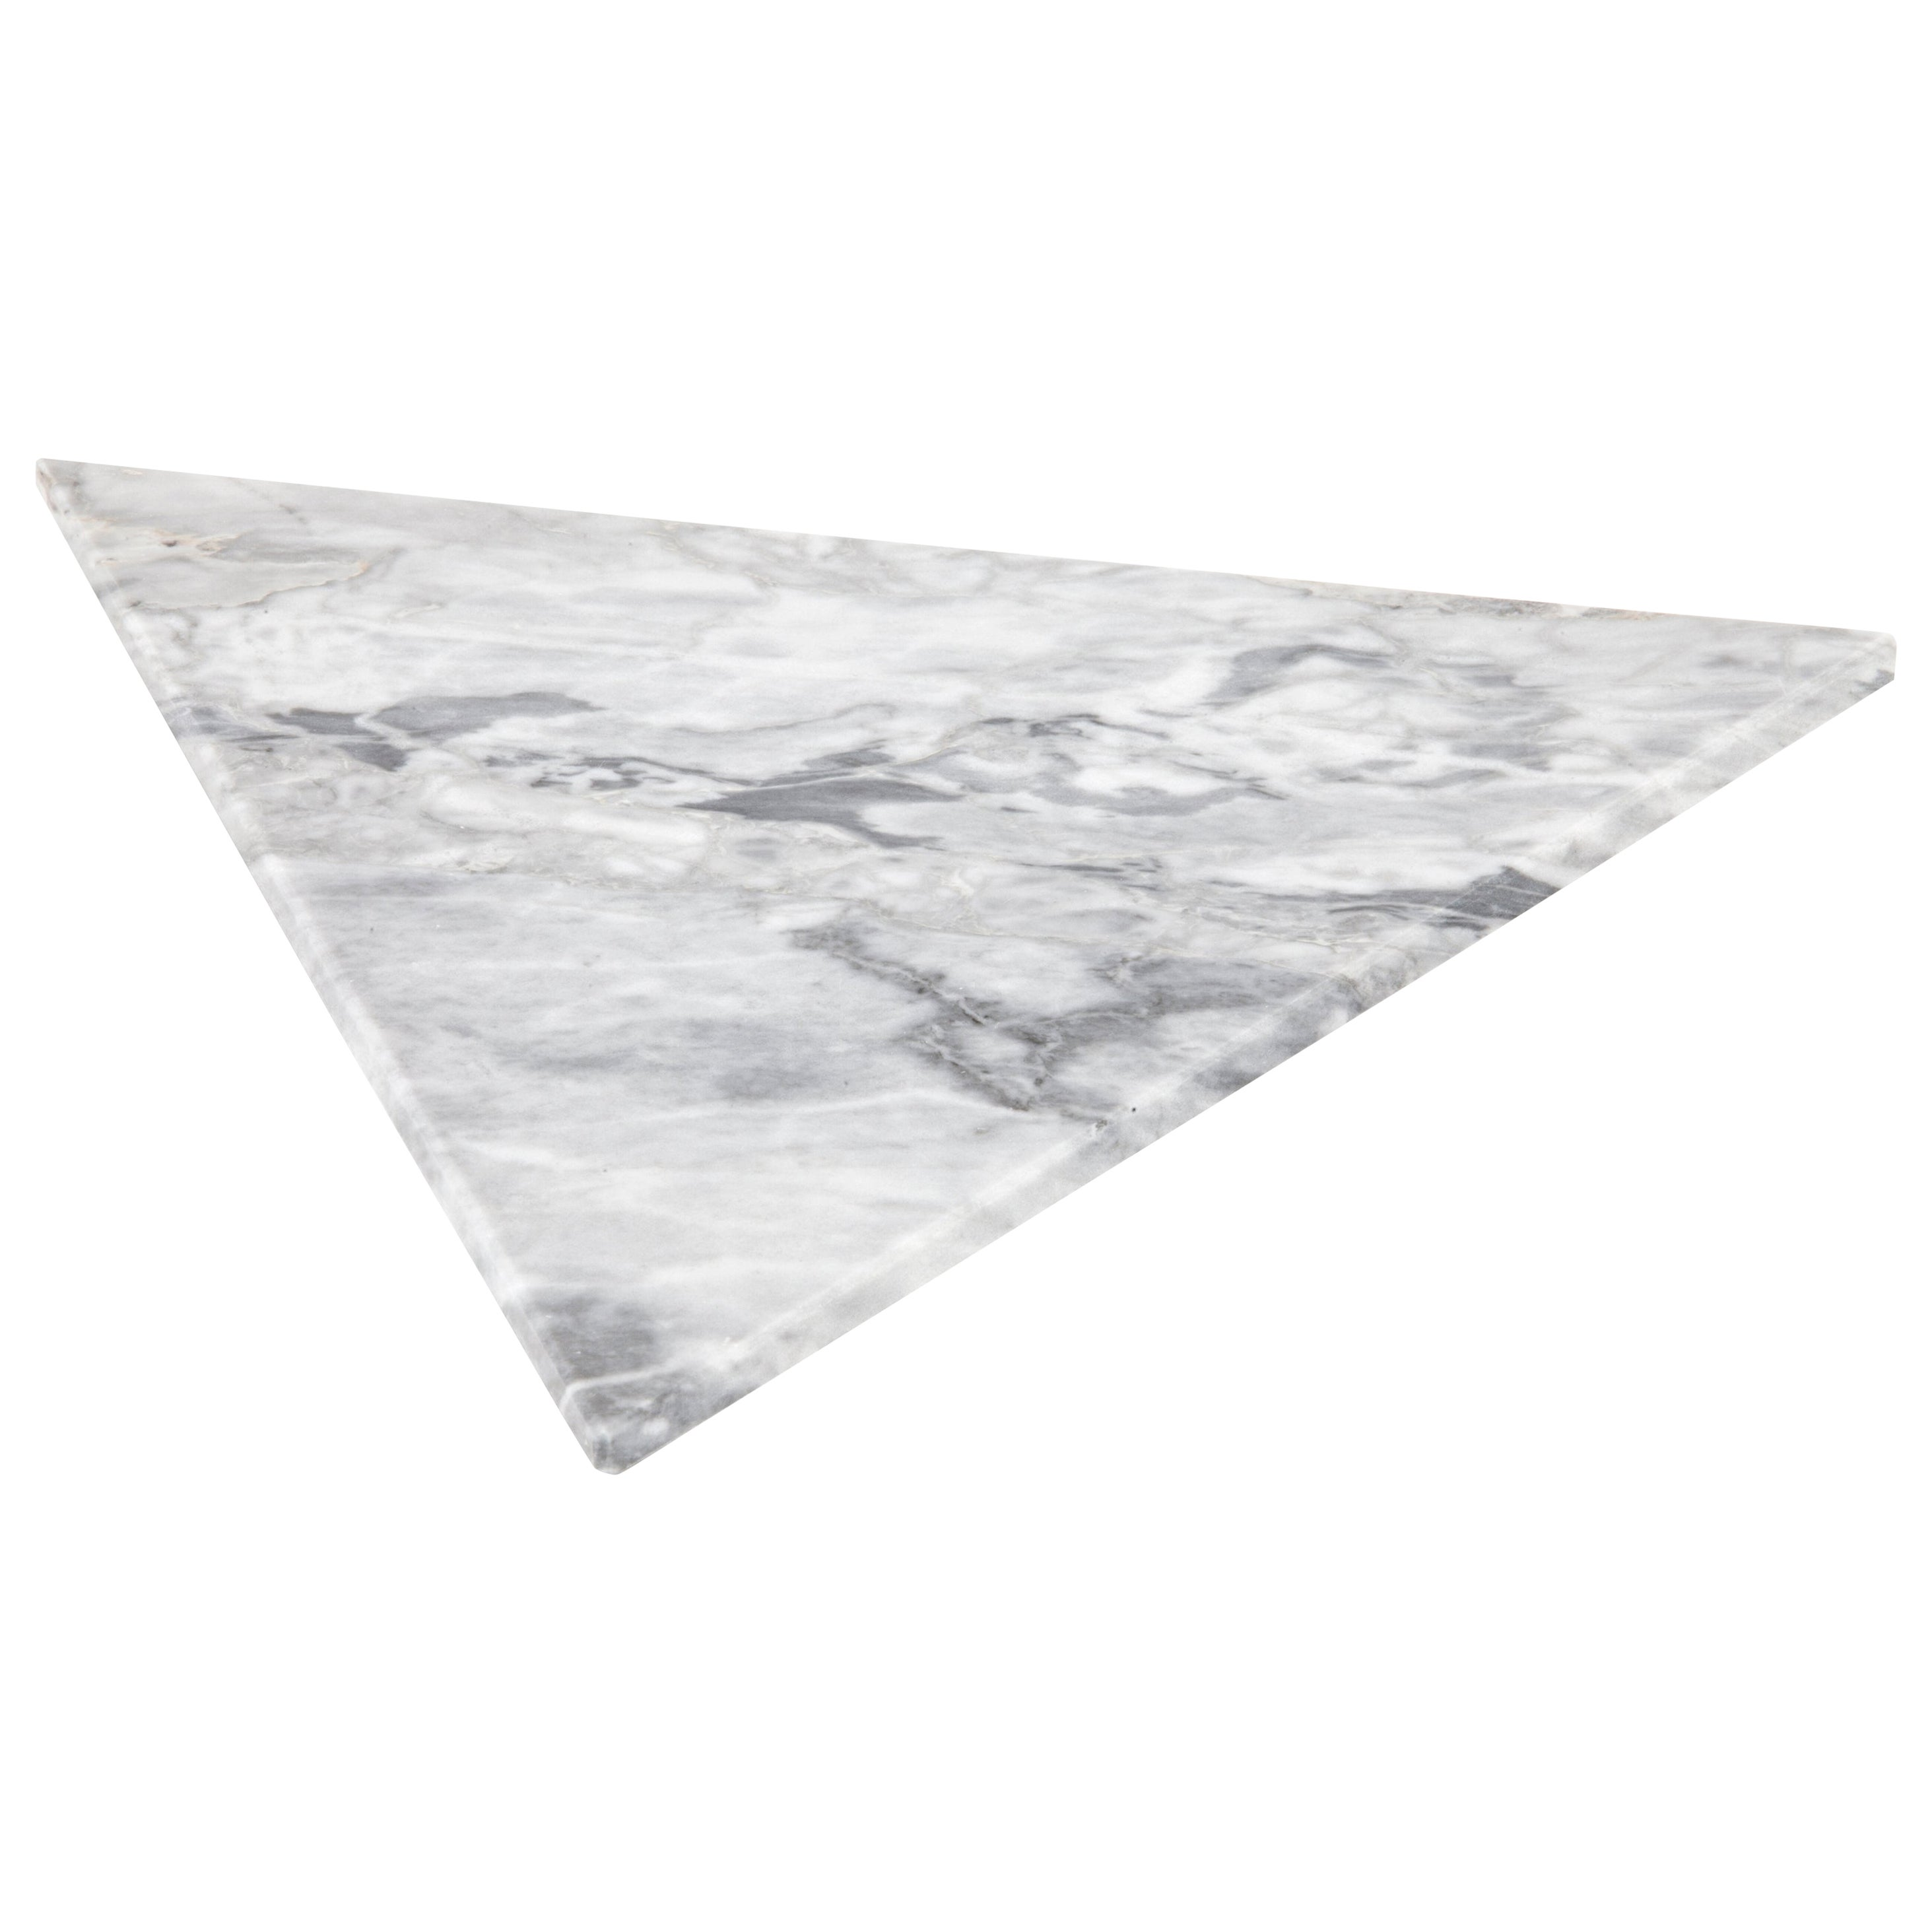 Triangular Grey Marble Cutting Board and Serving Tray